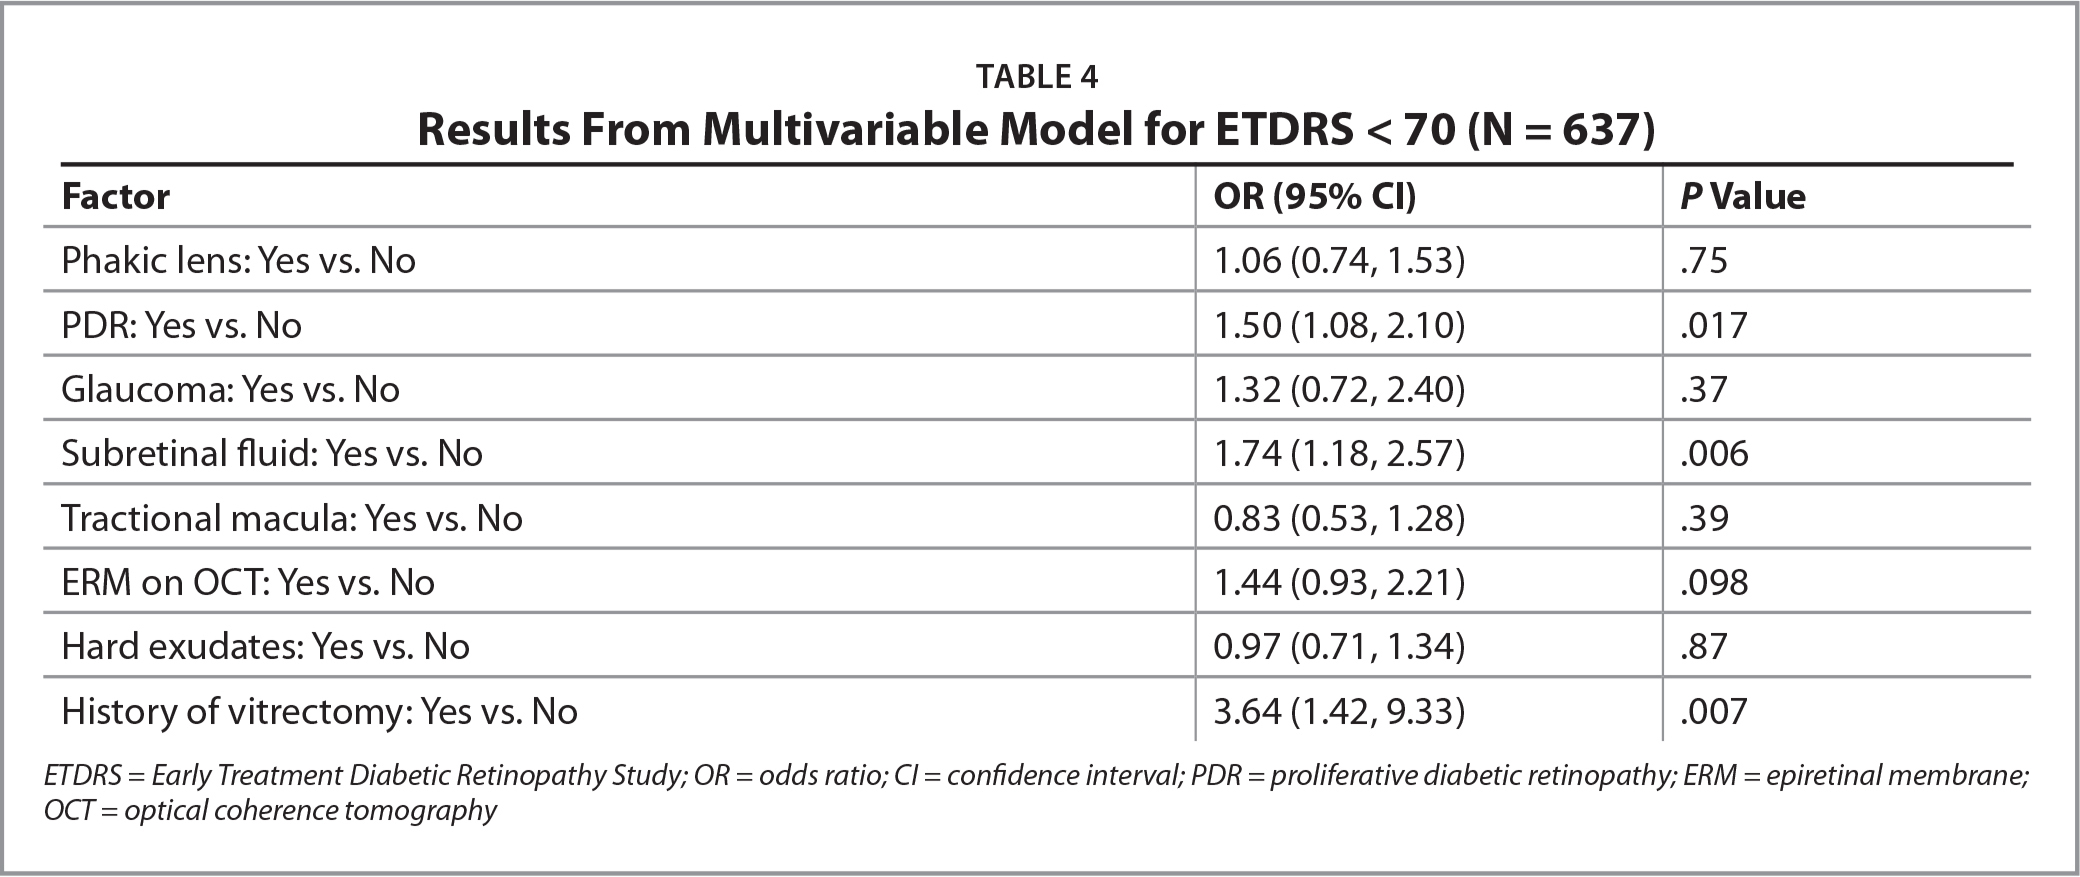 Results From Multivariable Model for ETDRS < 70 (N = 637)